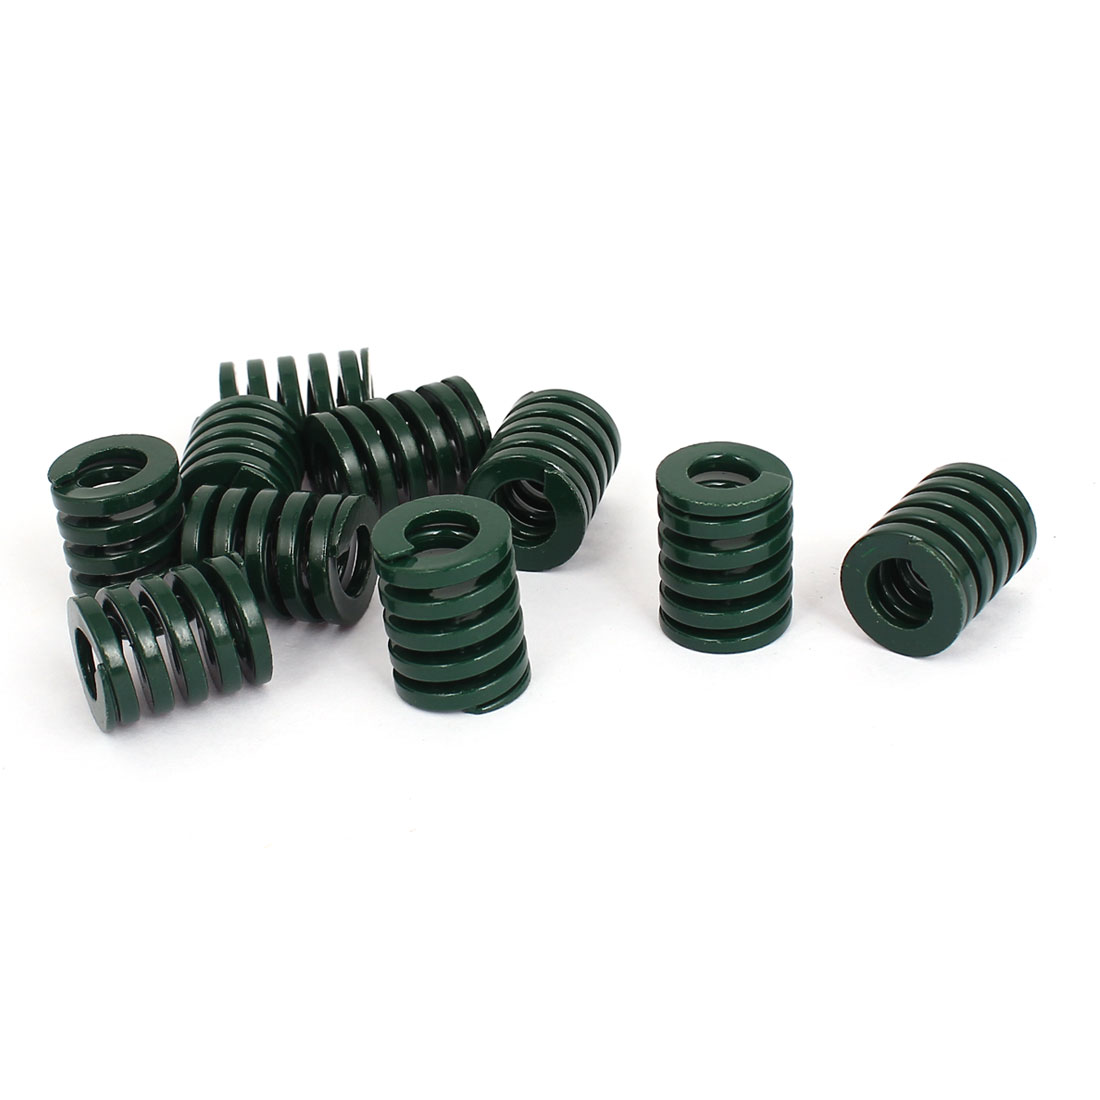 16mm OD 20mm Long Heavy Load Stamping Compression Mold Die Spring Green 10pcs